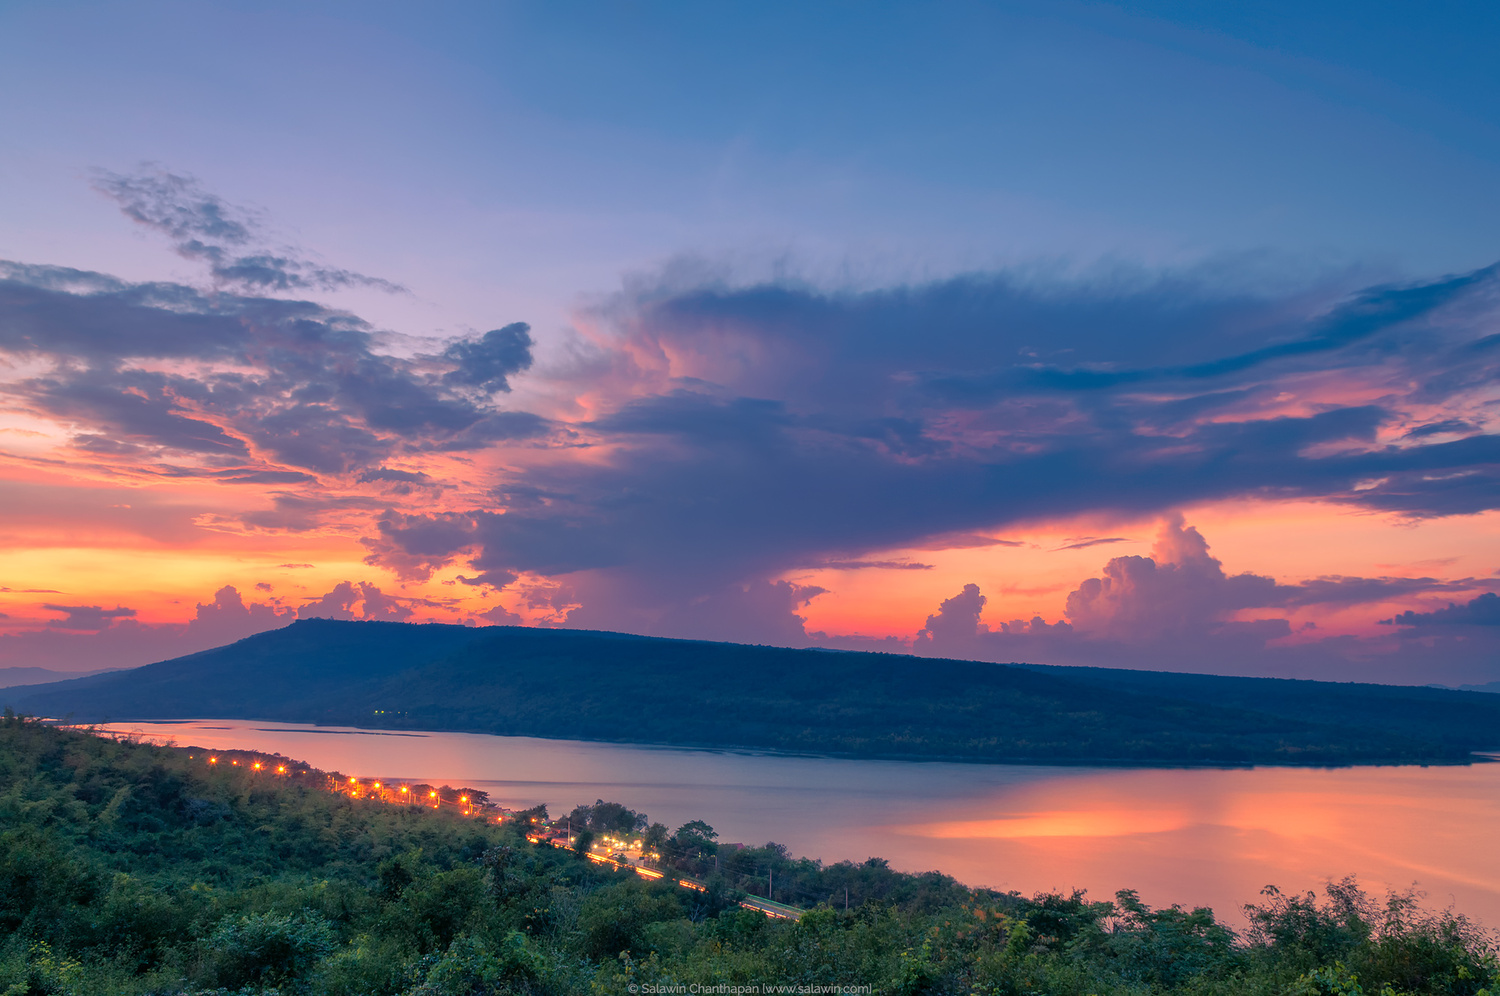 Beautiful sunset at Lam Ta Khong Reservoir by Salawin Chanthapan